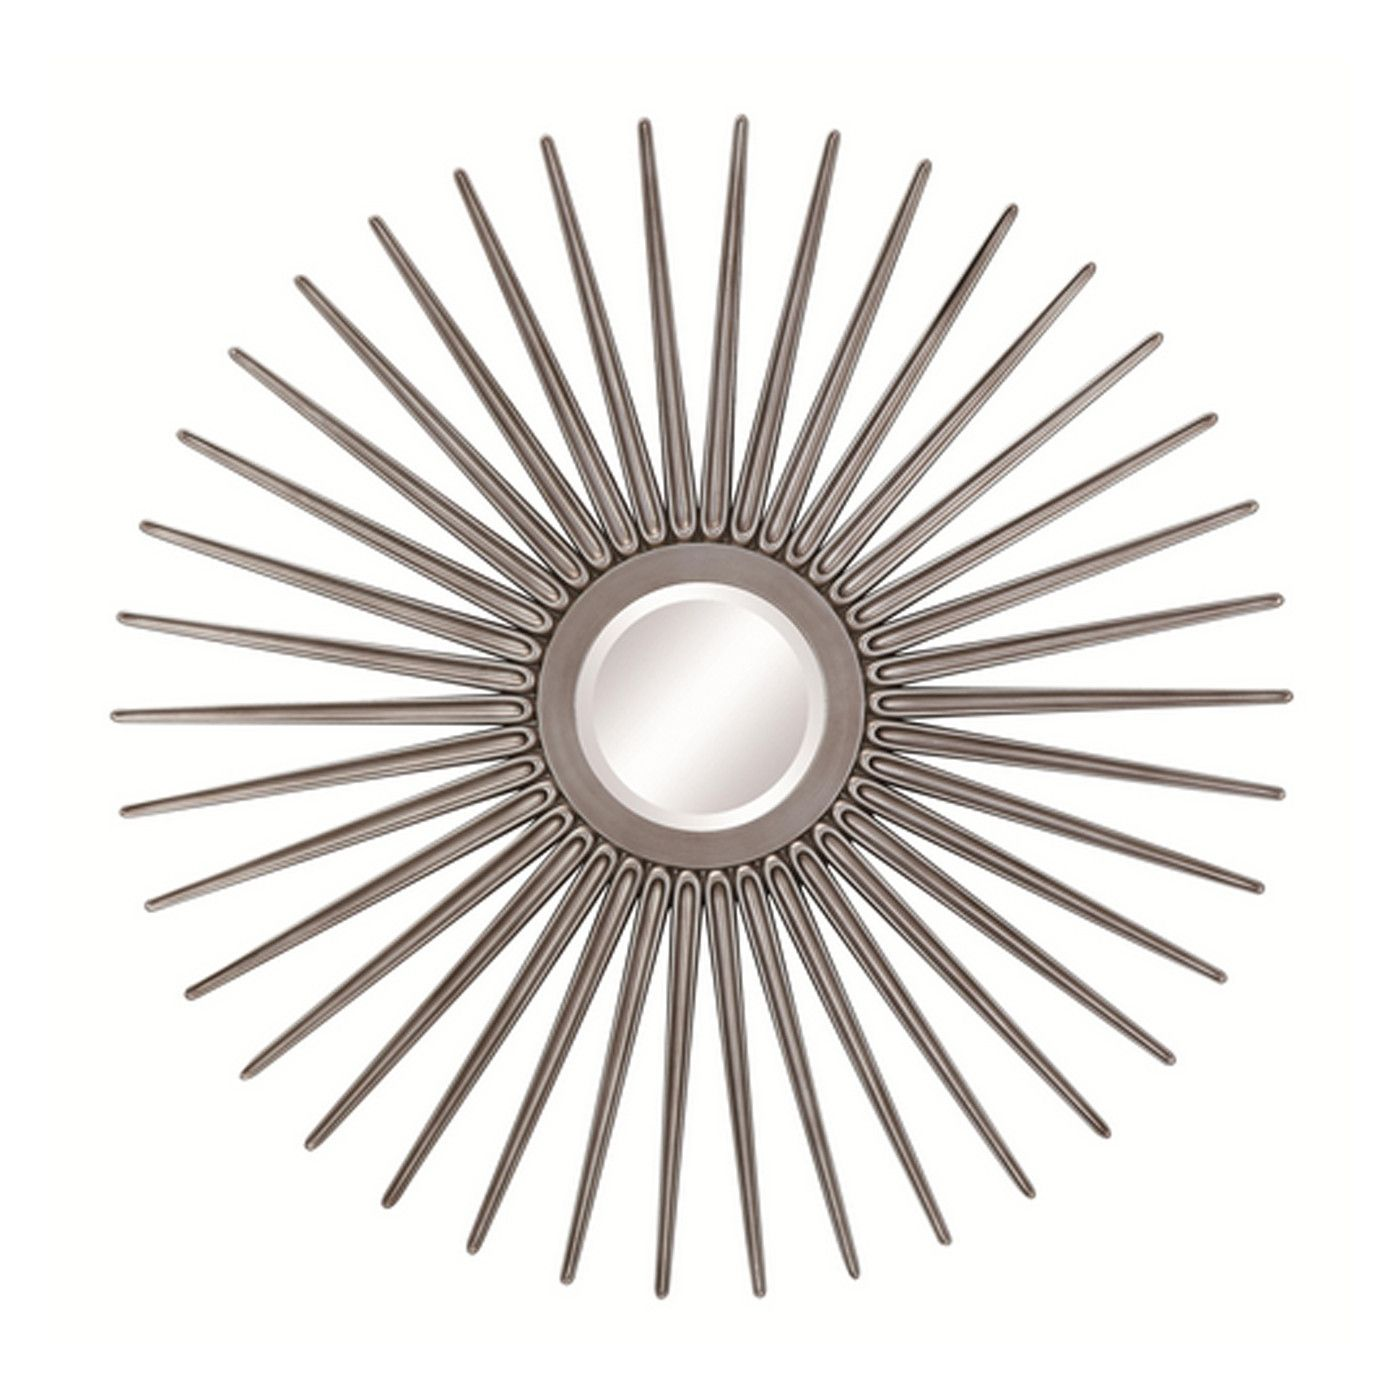 This decorative sun shaped mirror is the perfect mix of ...